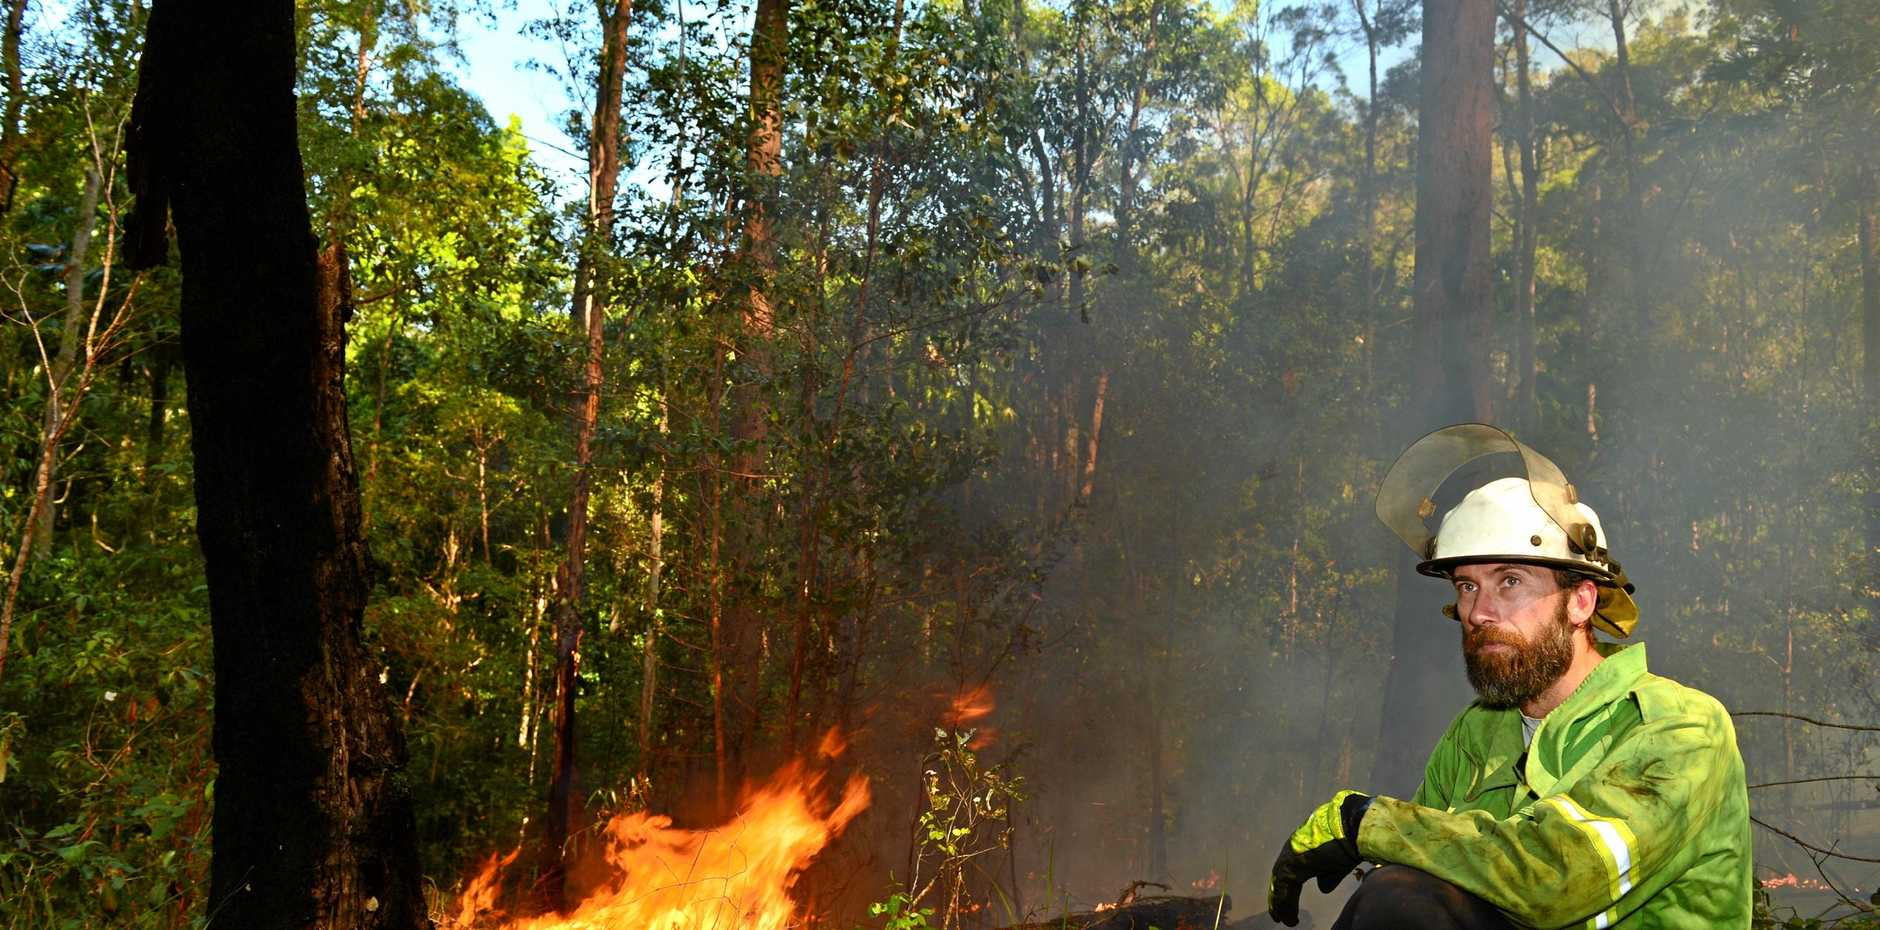 Park rangers like John McQueeney are keeping an eye on the controlled burns and fire conditions in National Parks.